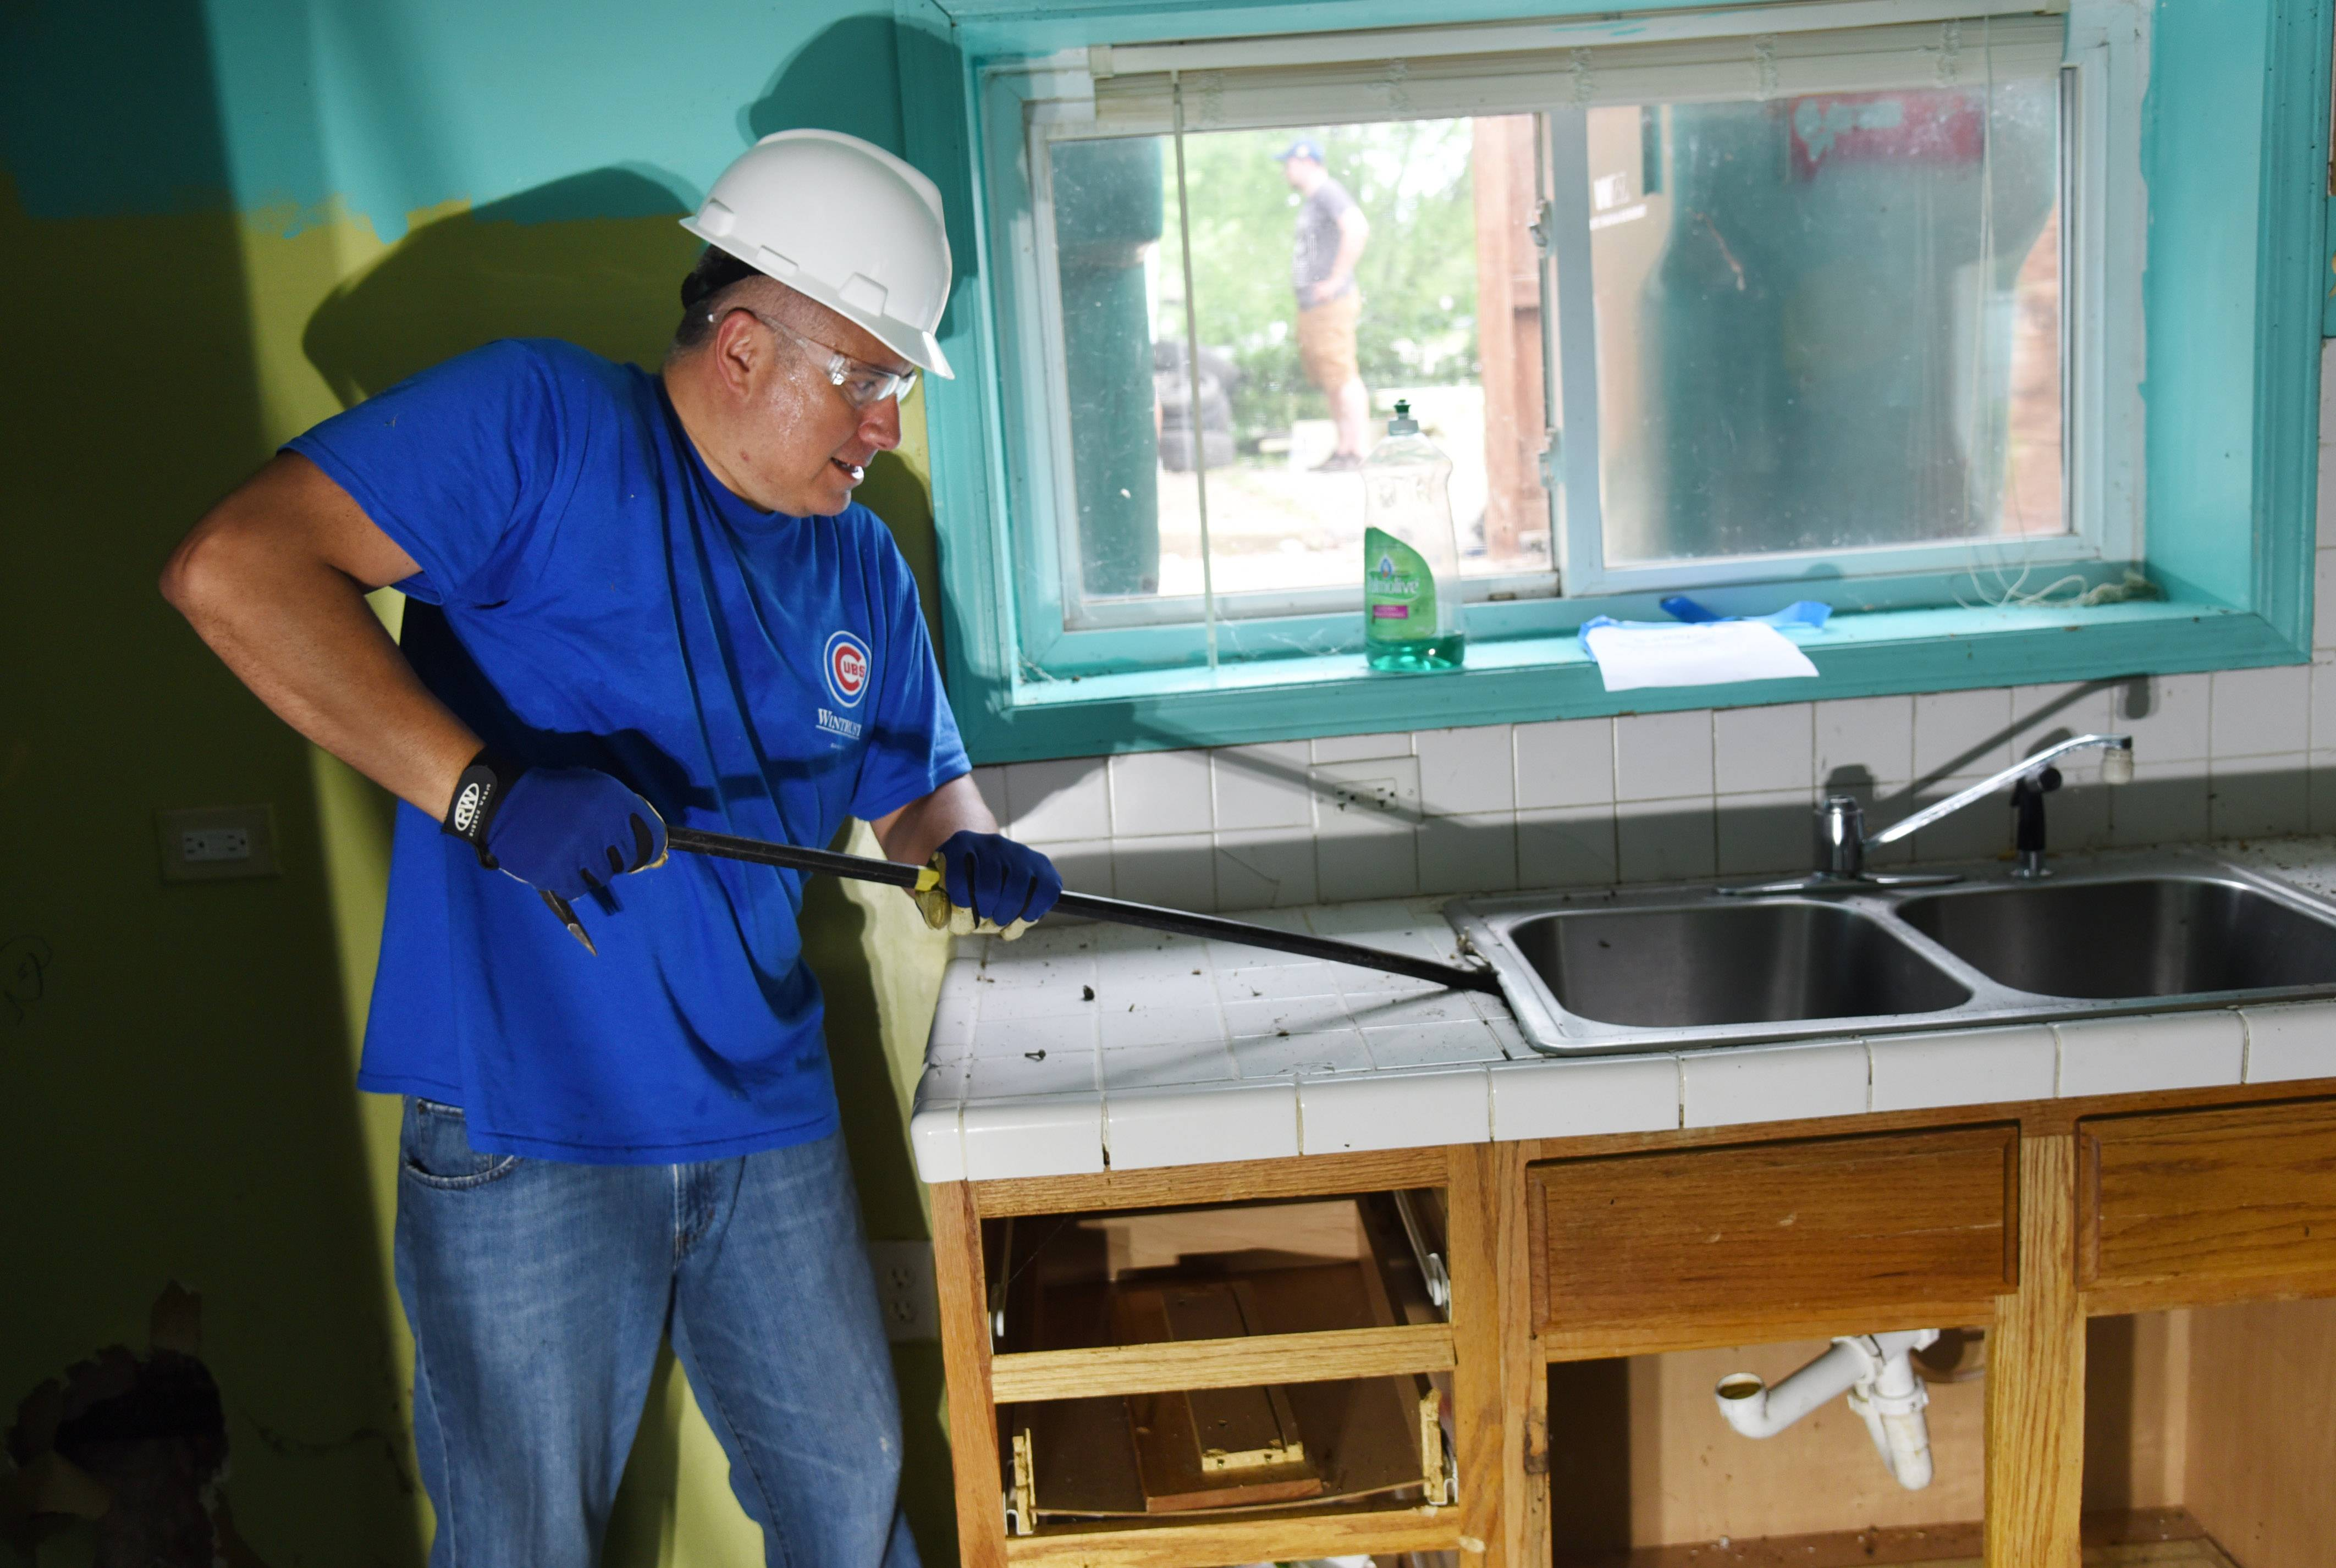 Grayslake volunteer Carlos Rosado removes a sink from the lower level of a house on Woodland Drive in Round Lake Beach Friday morning. The house was bought out of foreclosure to be rehabbed and sold at an affordable price.